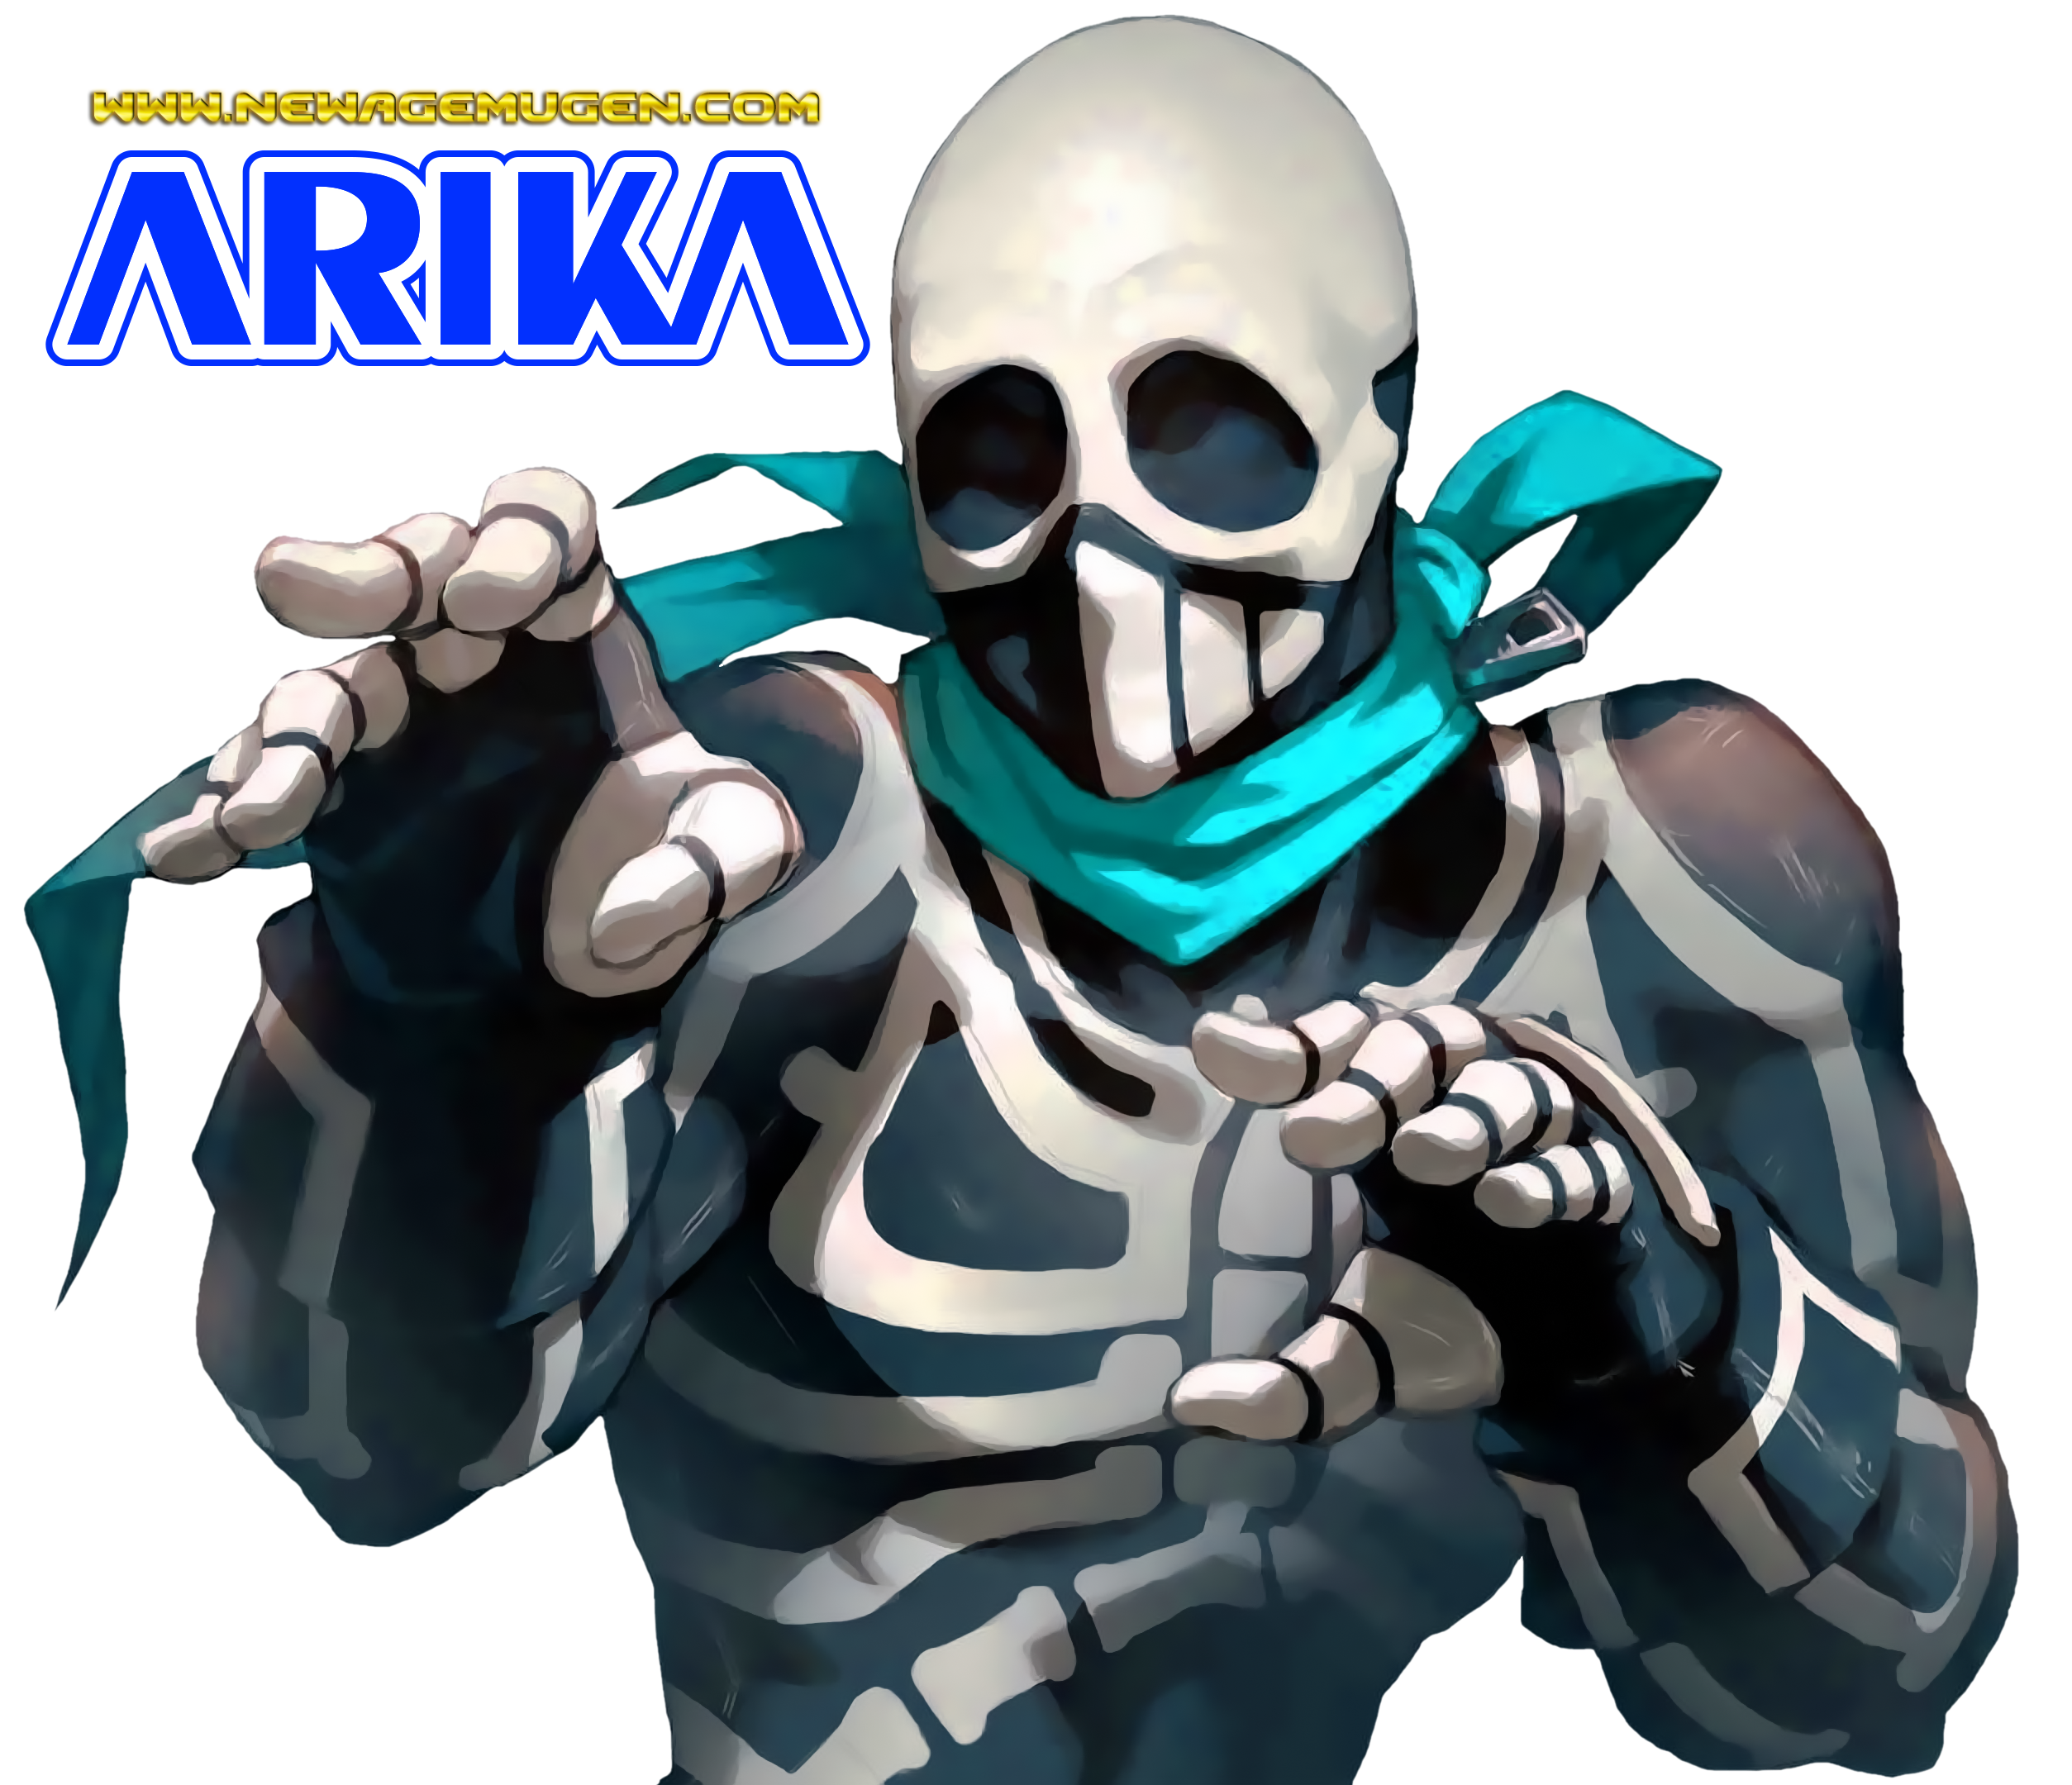 "アリカ謎の格闘ゲーム/Arika's Mysterious Fighting Game""  AKA Fighting EX Layer 37021820140_516d0979b5_o"